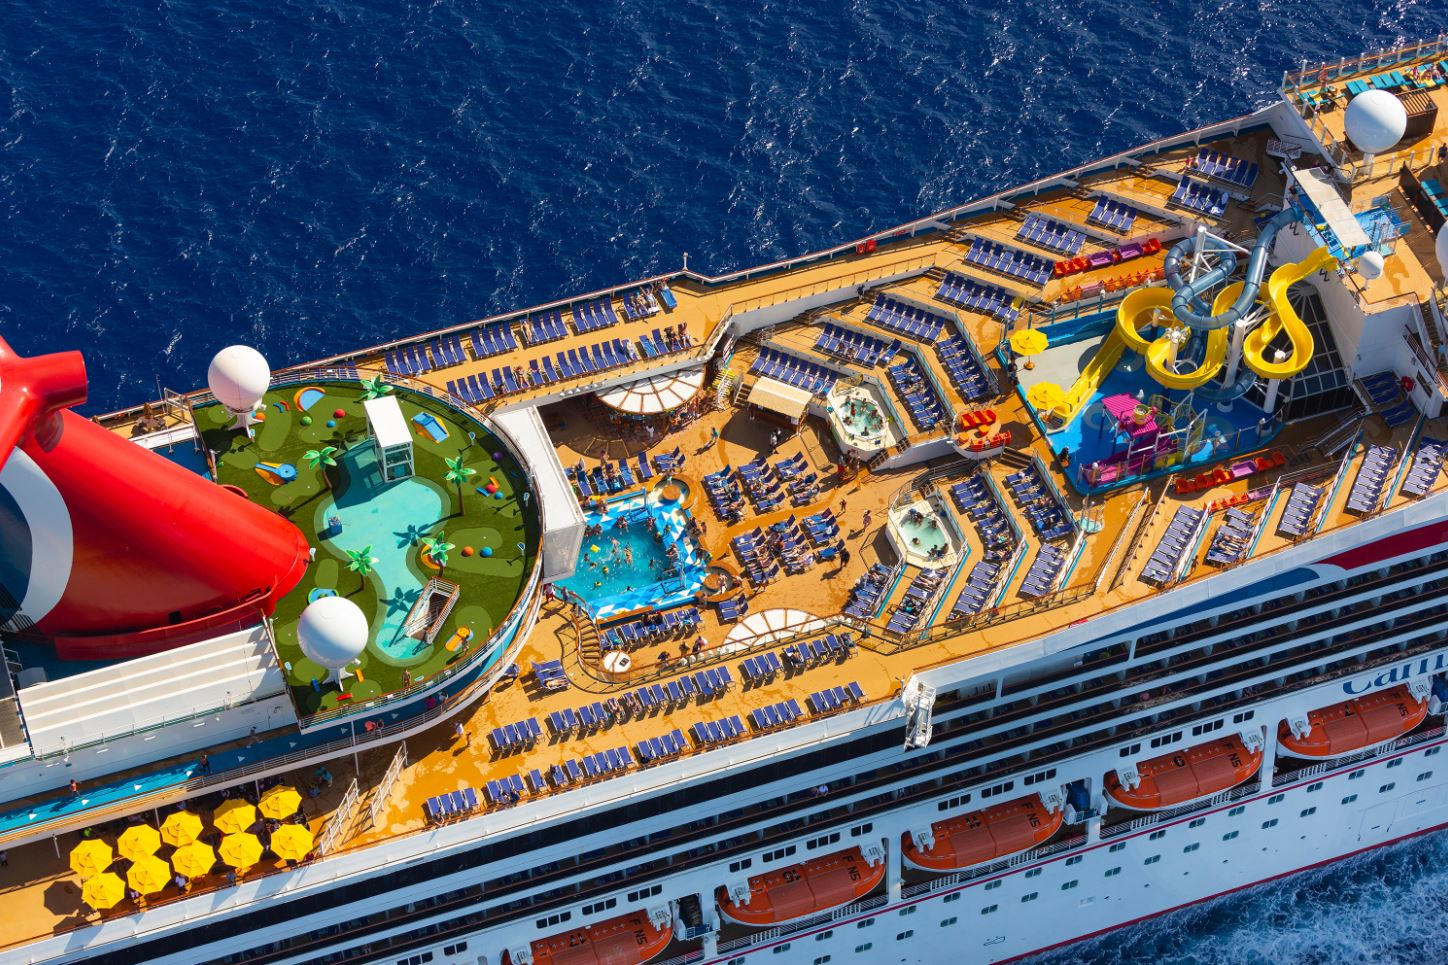 Carnival Cruise Line Earns Six Cruise Hive Awards, Including Best Cruise Line for Second Consecutive Year and Best New Cruise Ship for Carnival Panorama